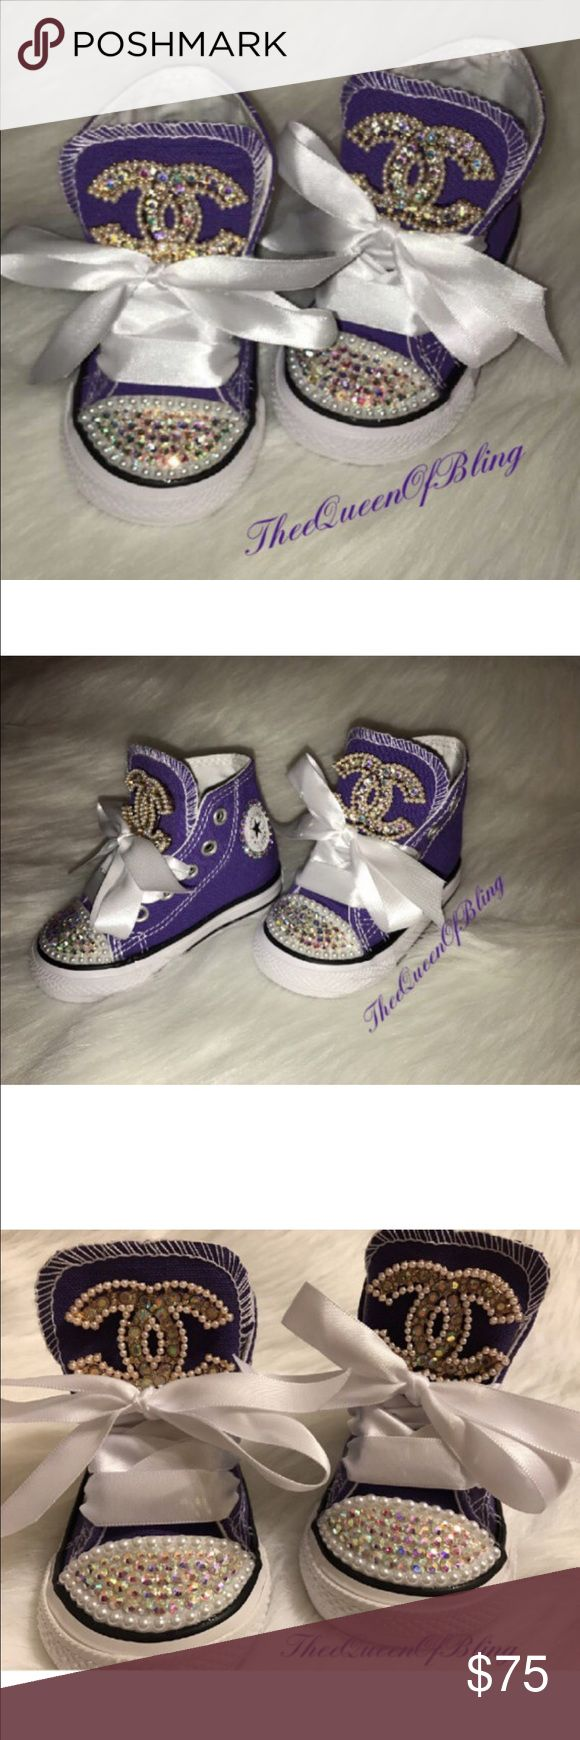 Toddler Converse One of a kind - Chanel inspired toddler converse 💎✨ Embellished by me Sizes 4c-  Price is firm! No offers will be accepted Converse Shoes Sneakers